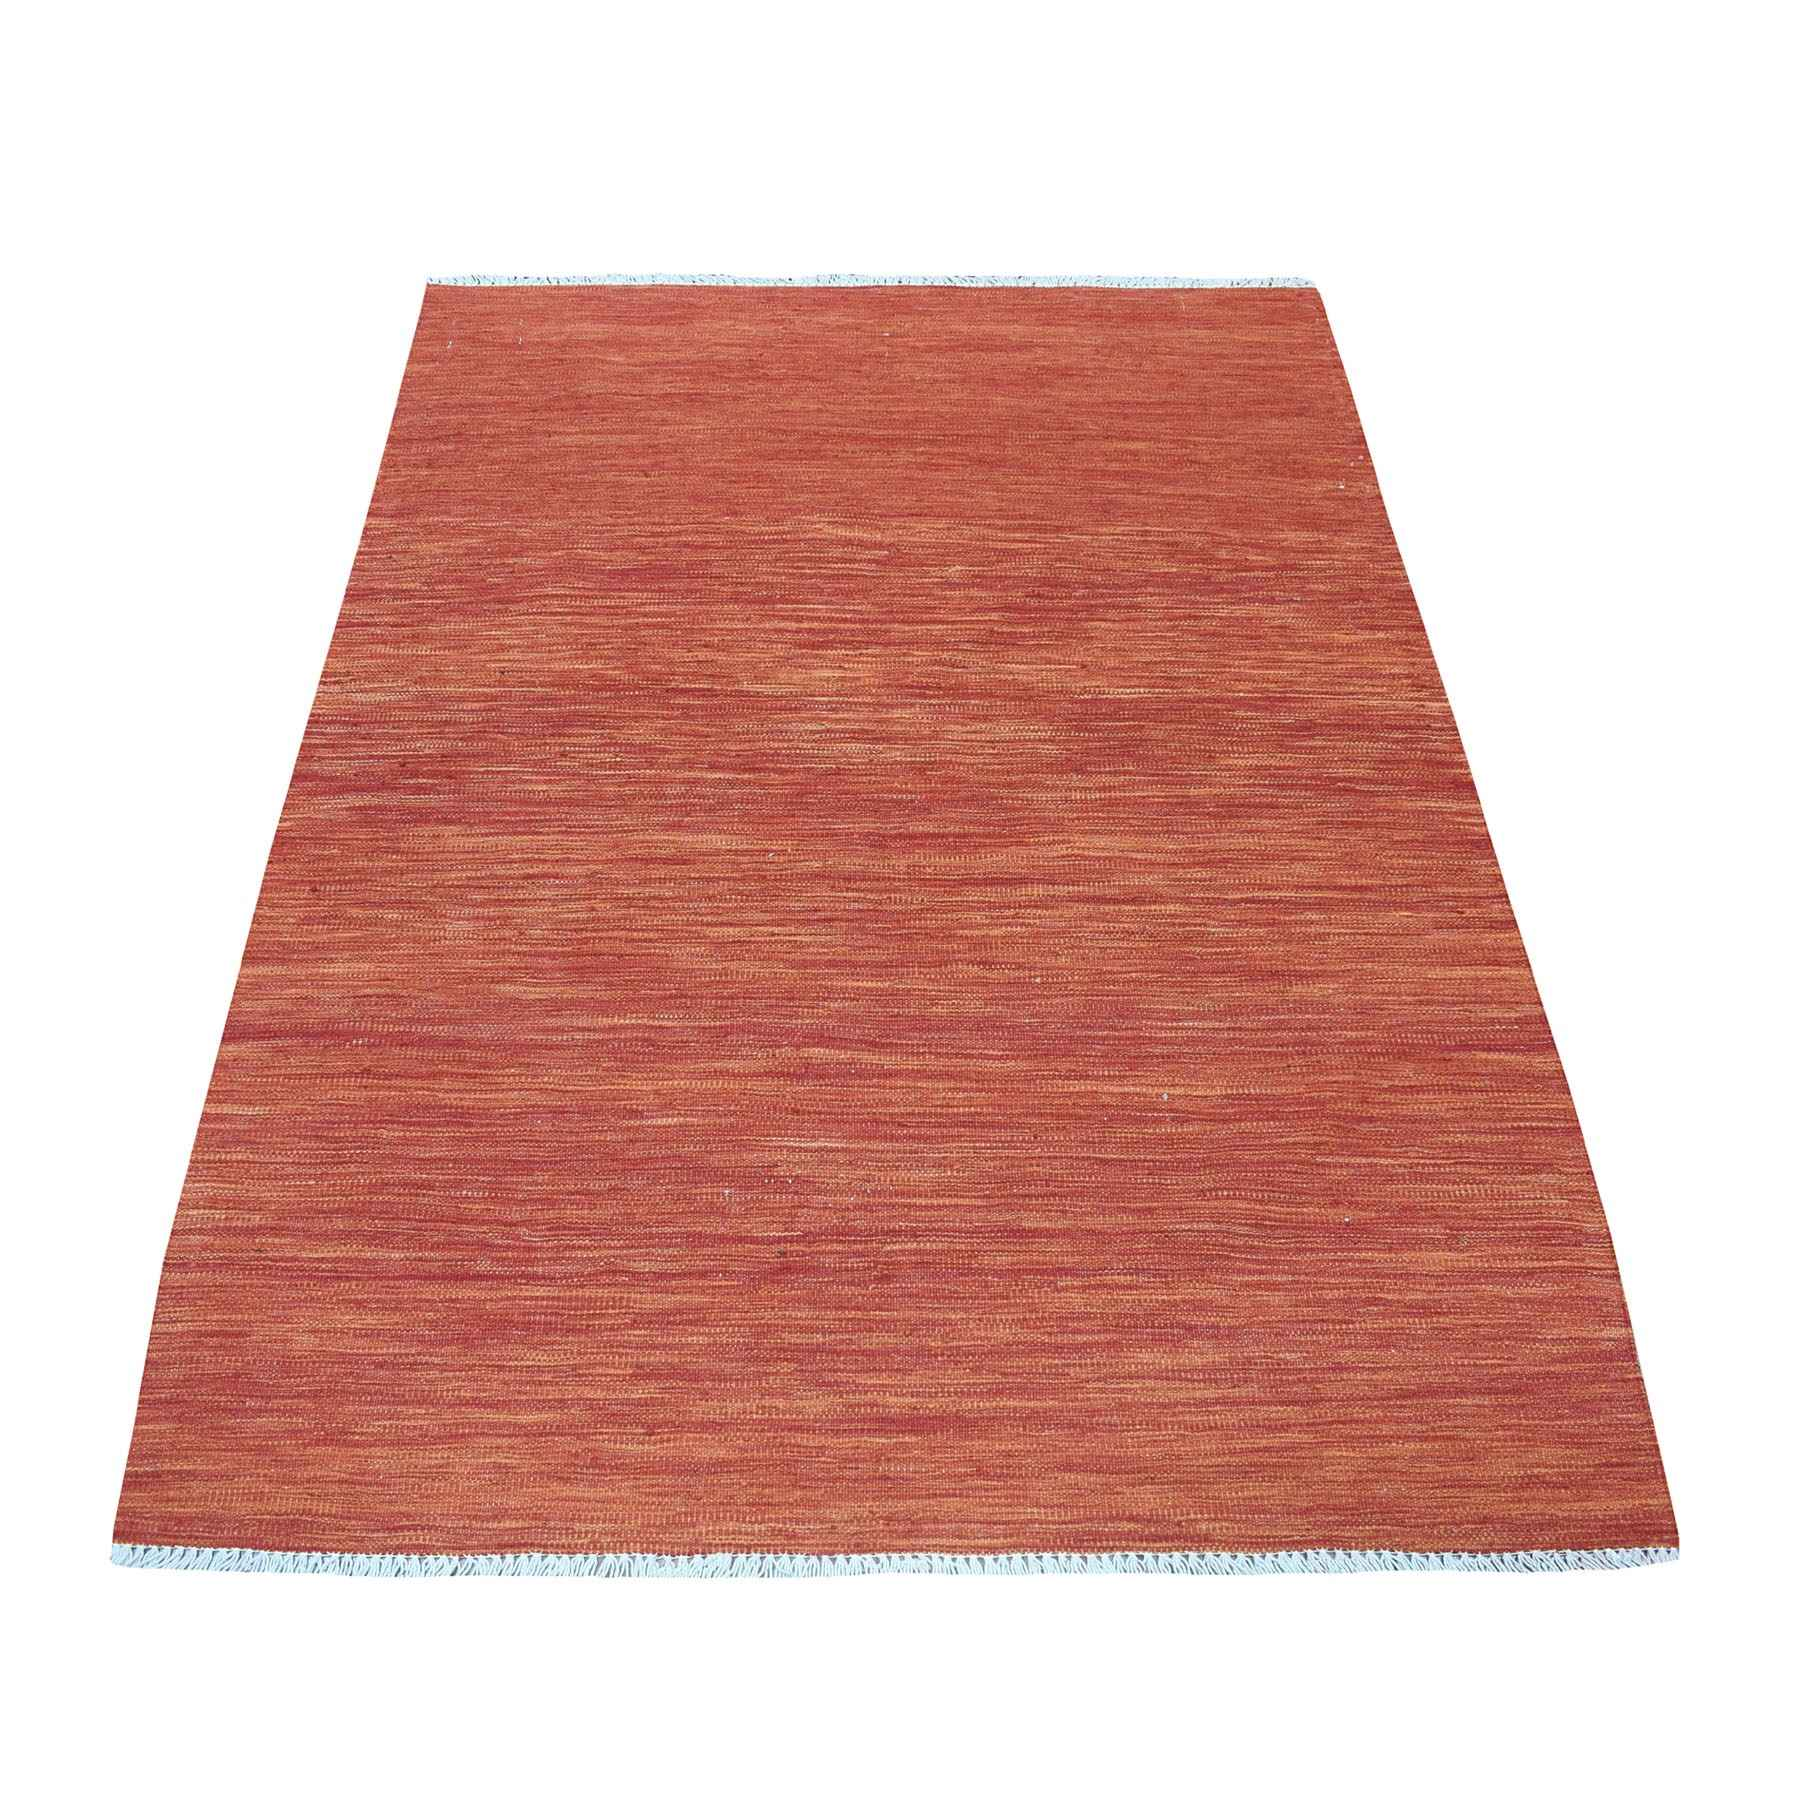 Fine Kilim Collection Hand Woven Red Rug No: 01108470